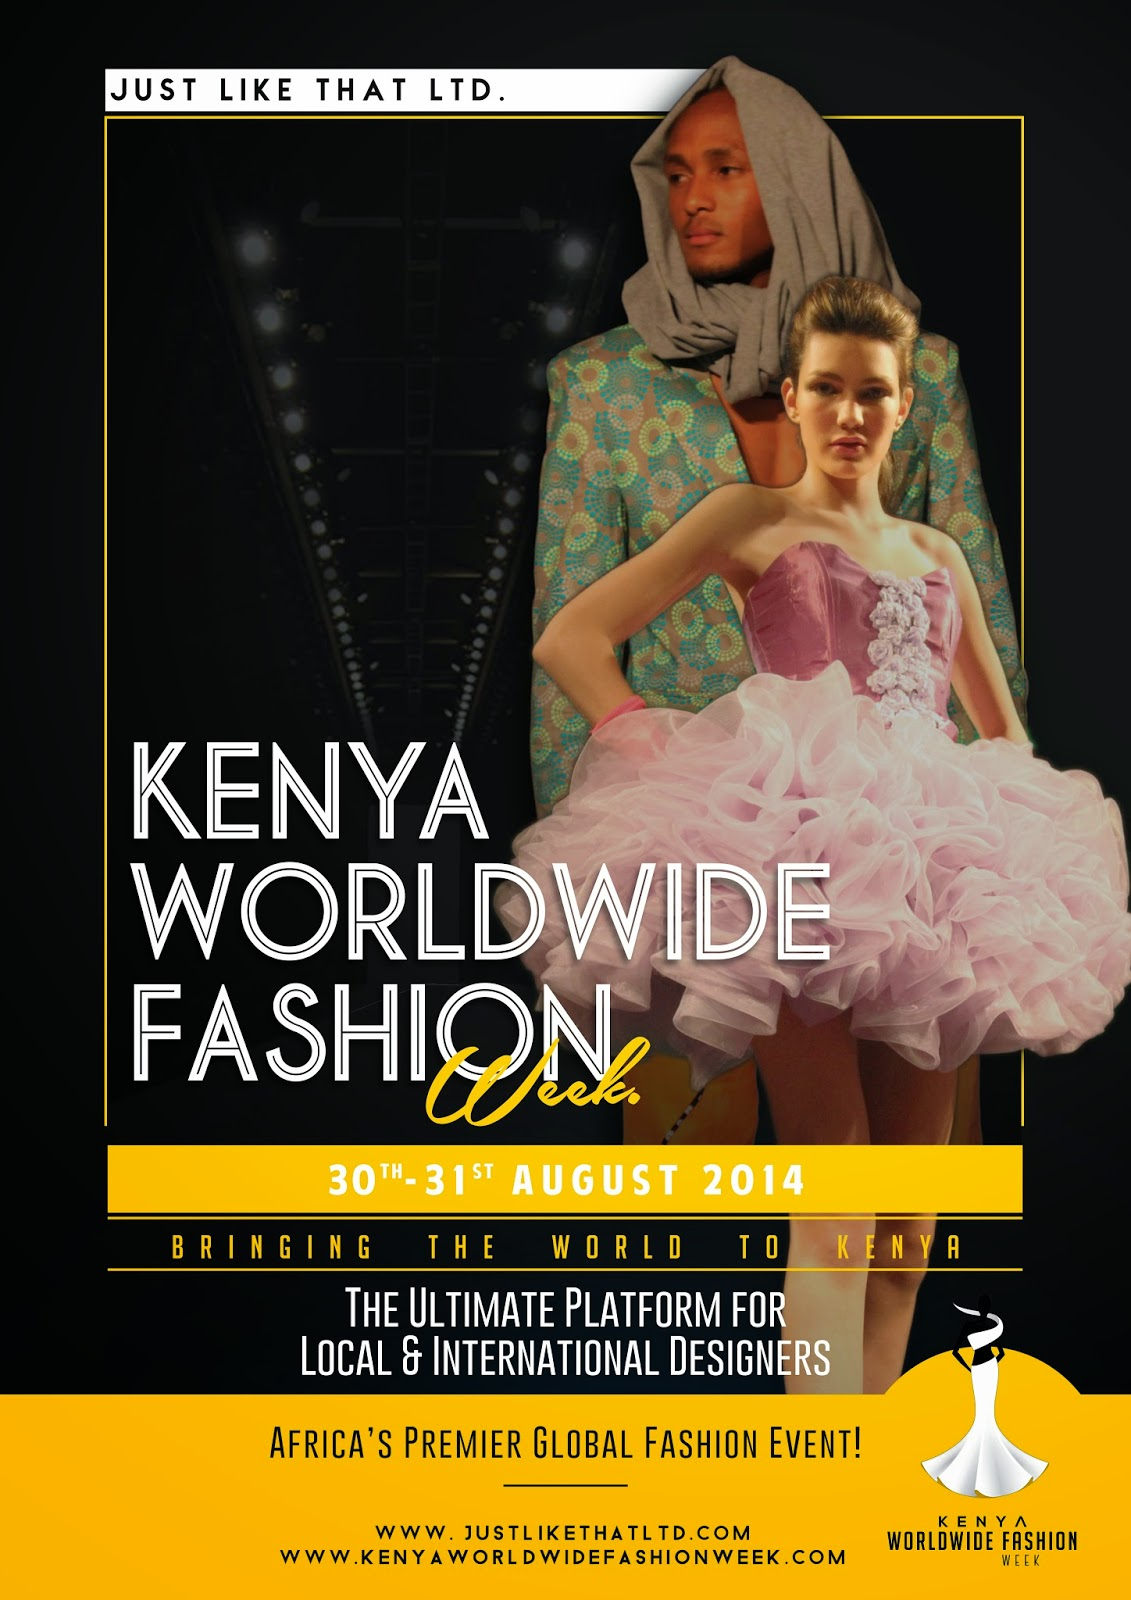 Kenya Worldwide Fashion Week